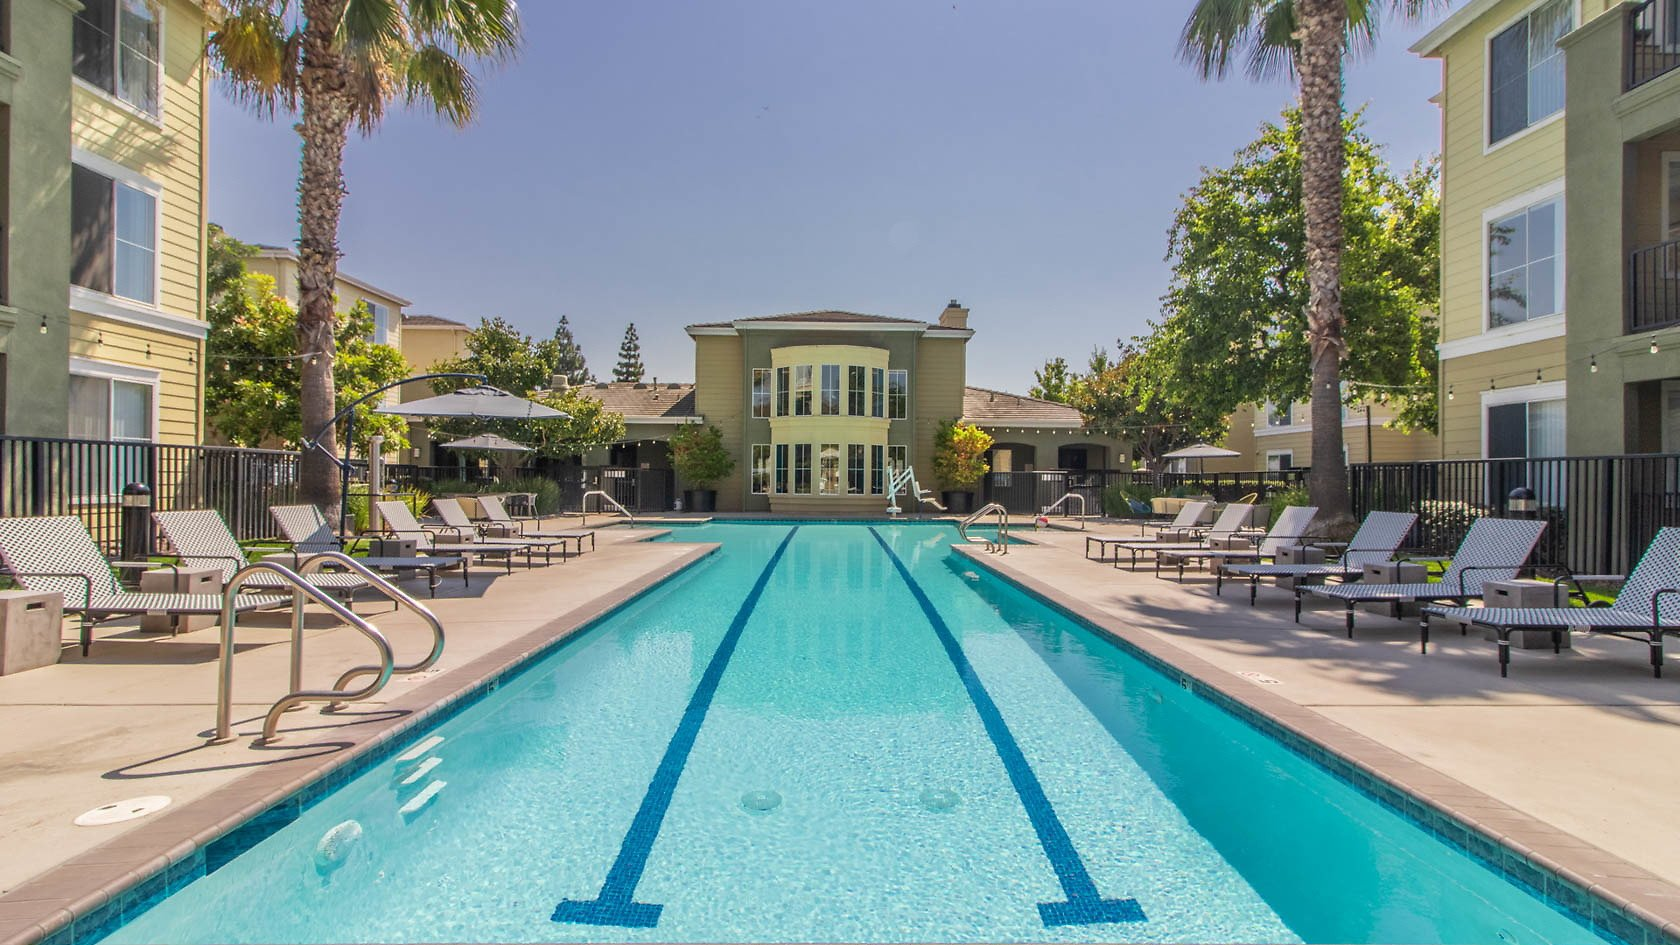 Waterford Place Furnished Rental-Sample Image of San Jose CA Insurance Home